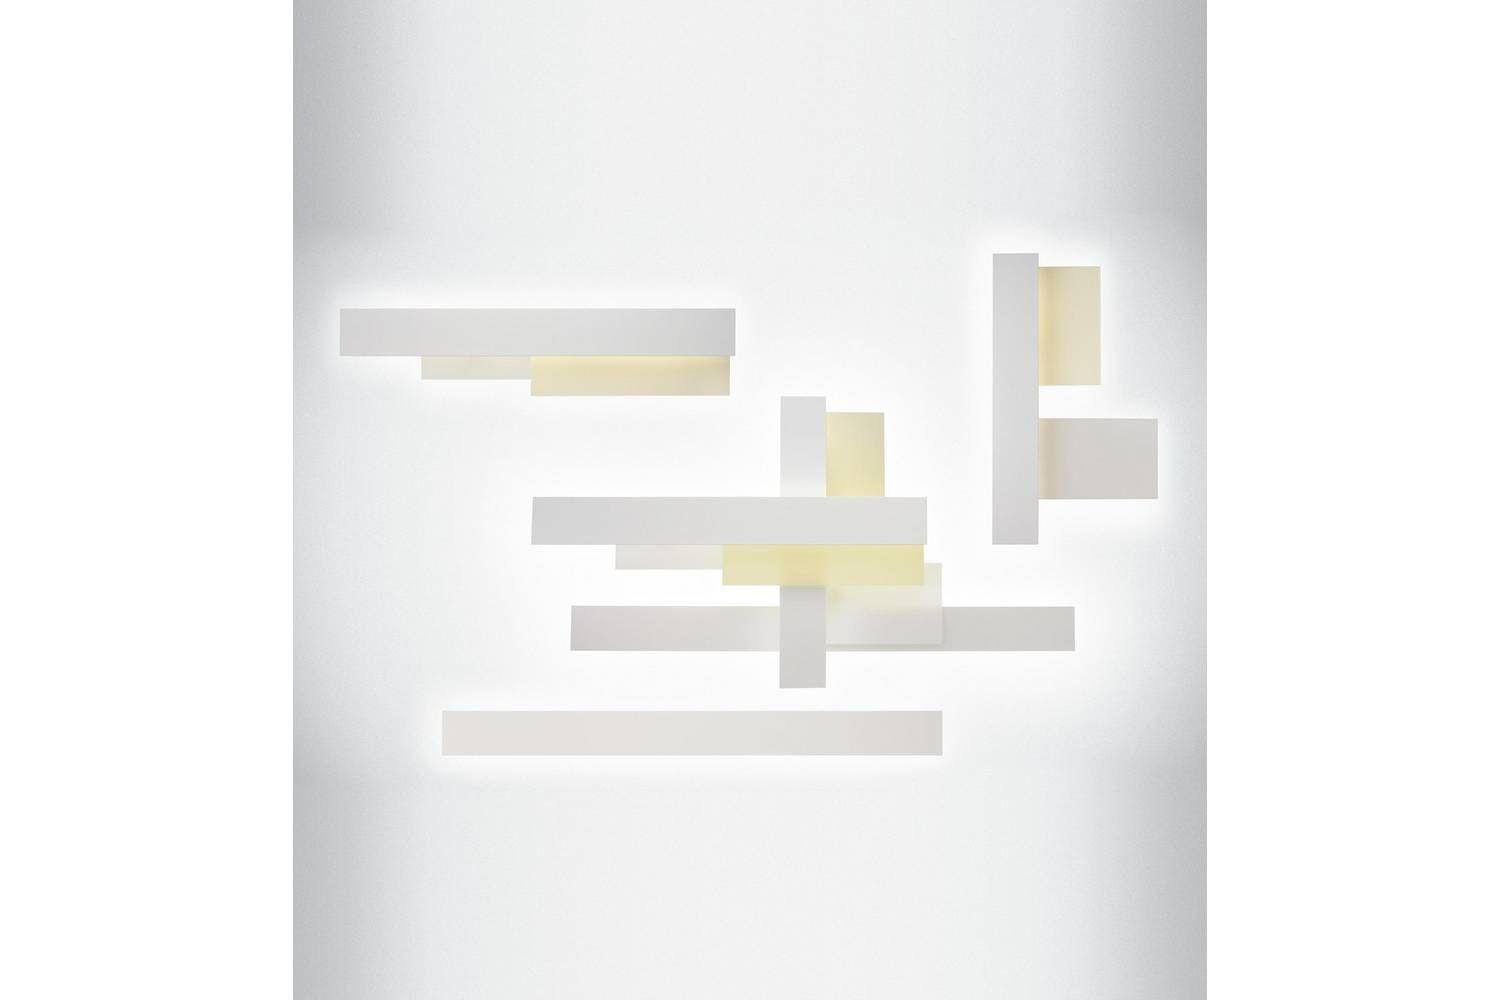 Fields Wall Lamp by Vicente Garcia Jimenez for Foscarini